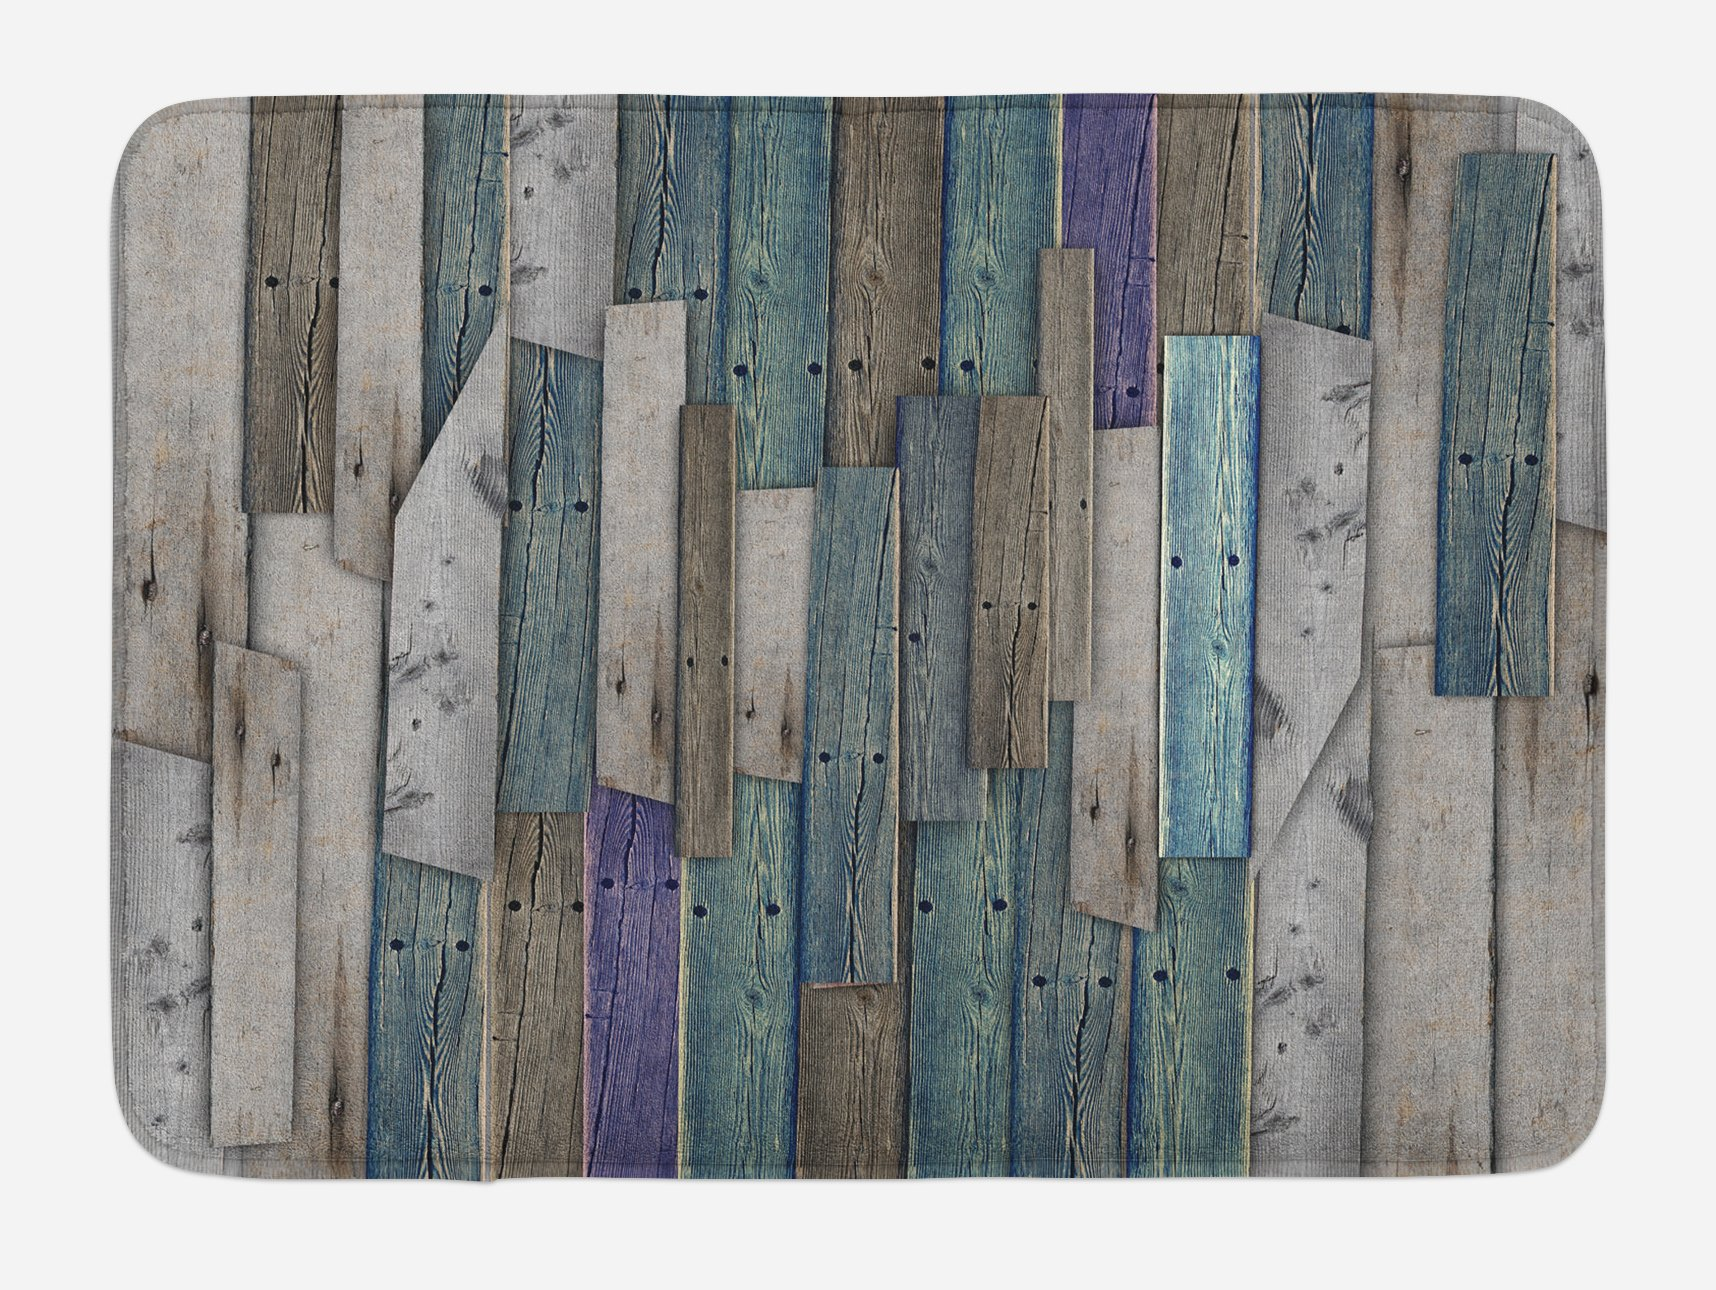 Ambesonne Wooden Bath Mat by, Blue Grey Grunge Rustic Planks Barn House Wood and Nails Lodge Hardwood Graphic Print, Plush Bathroom Decor Mat with Non Slip Backing, 29.5 W X 17.5 W Inches, Gray Blue